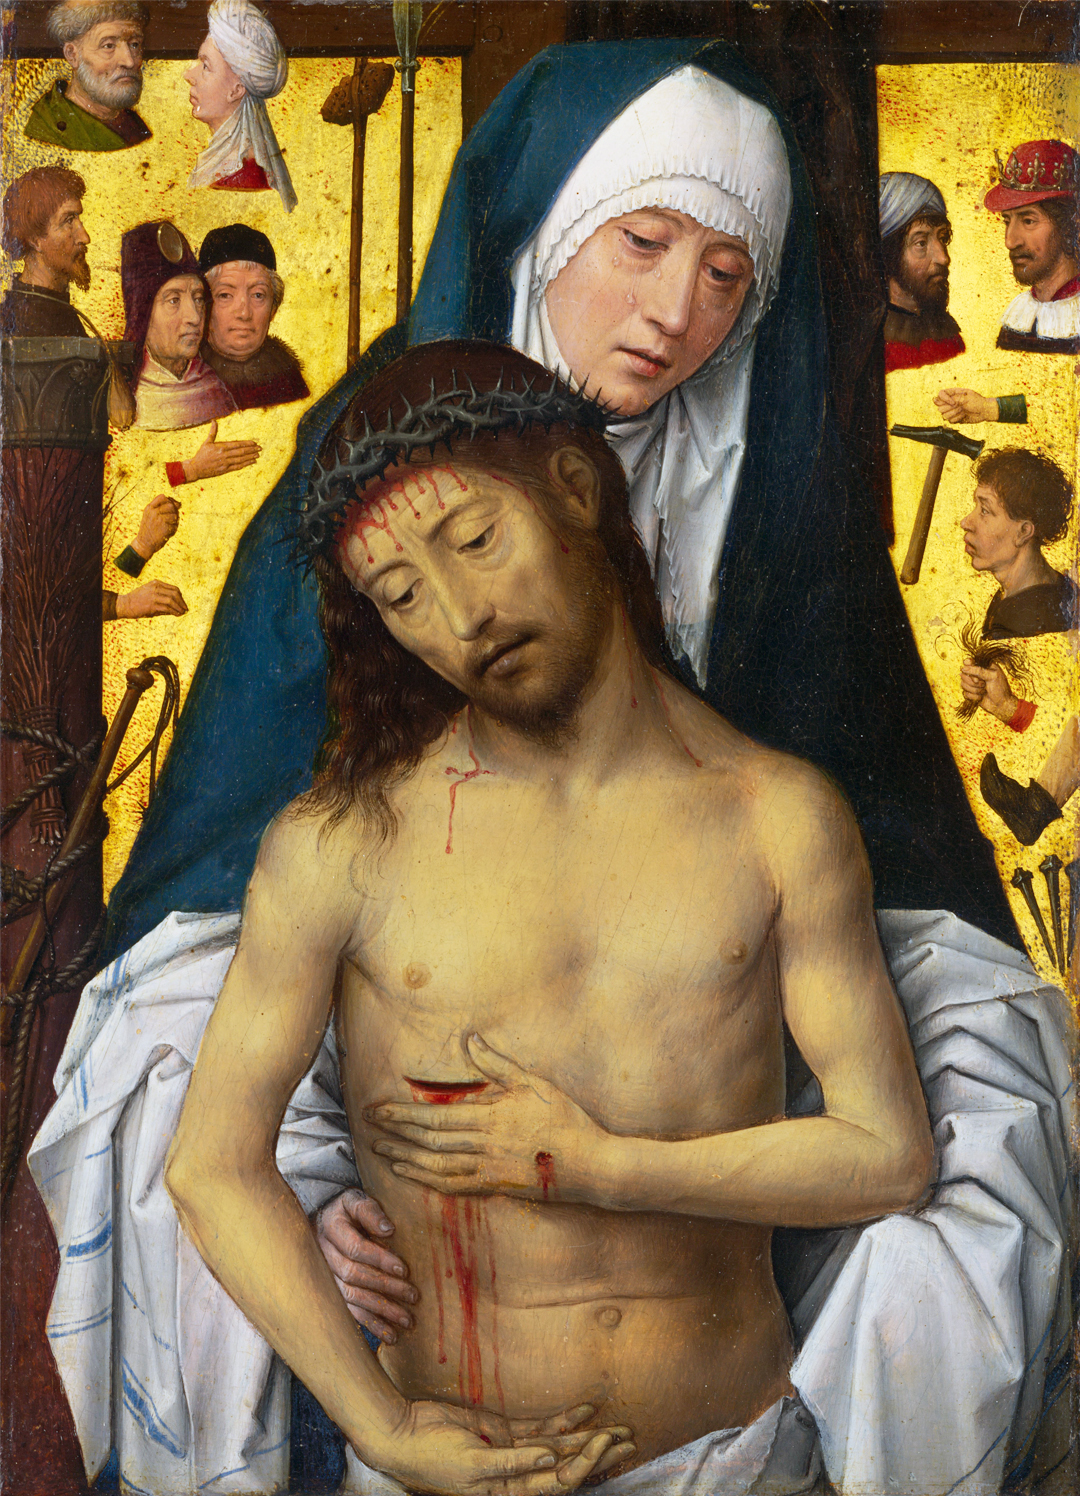 Hans_Memling - The Man of Sorrows in the arms of the Virgin